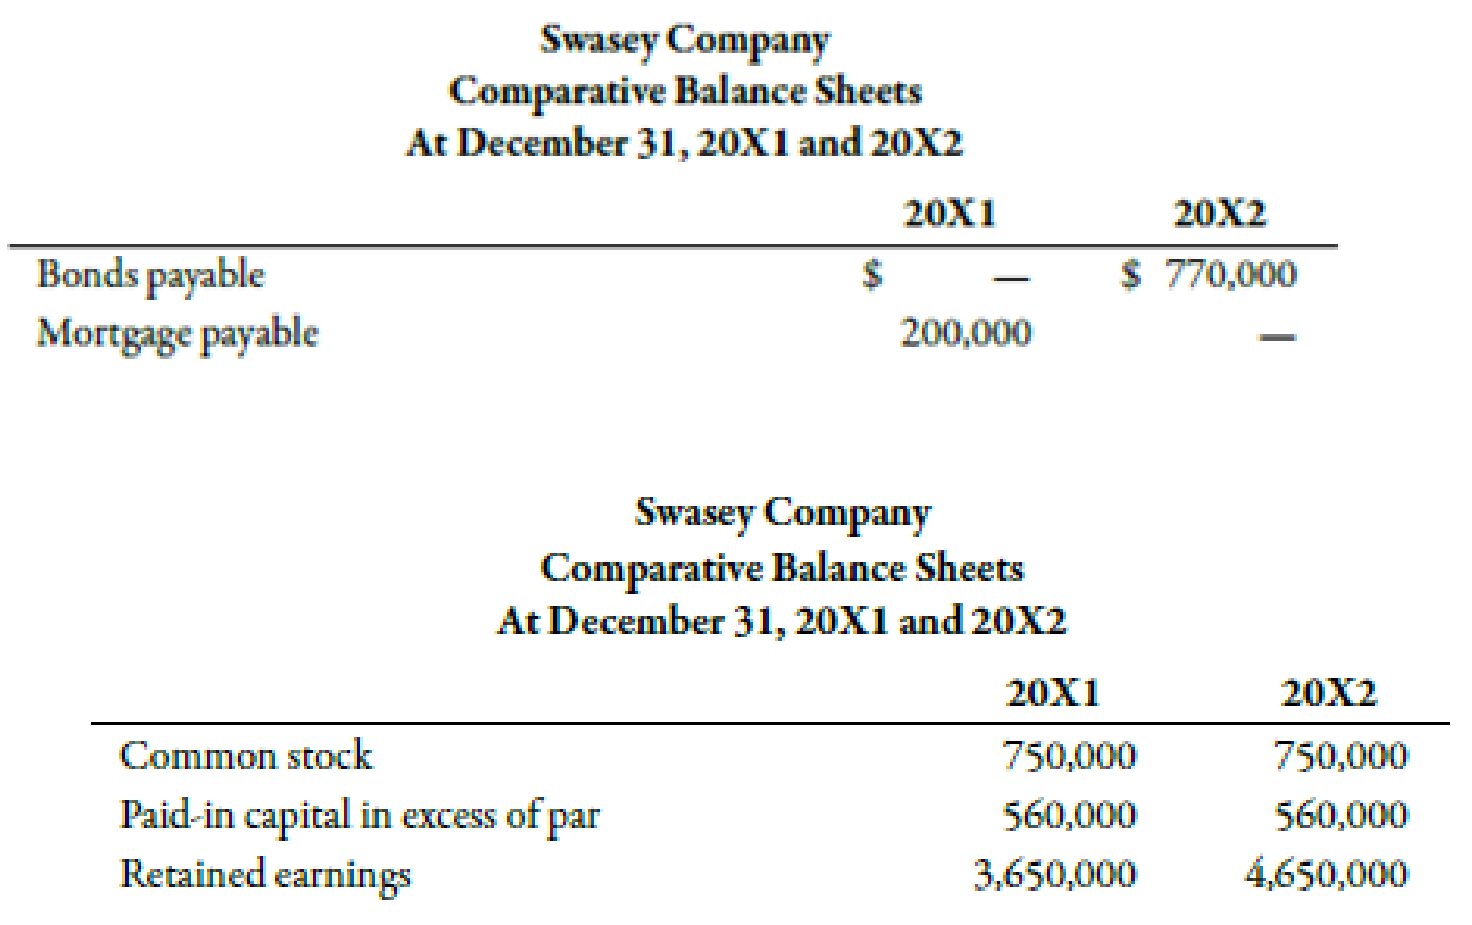 Chapter 14, Problem 21BEA, Swasey Company earned net income of 1,800,000 in 20X2. Swasey provided the following information: